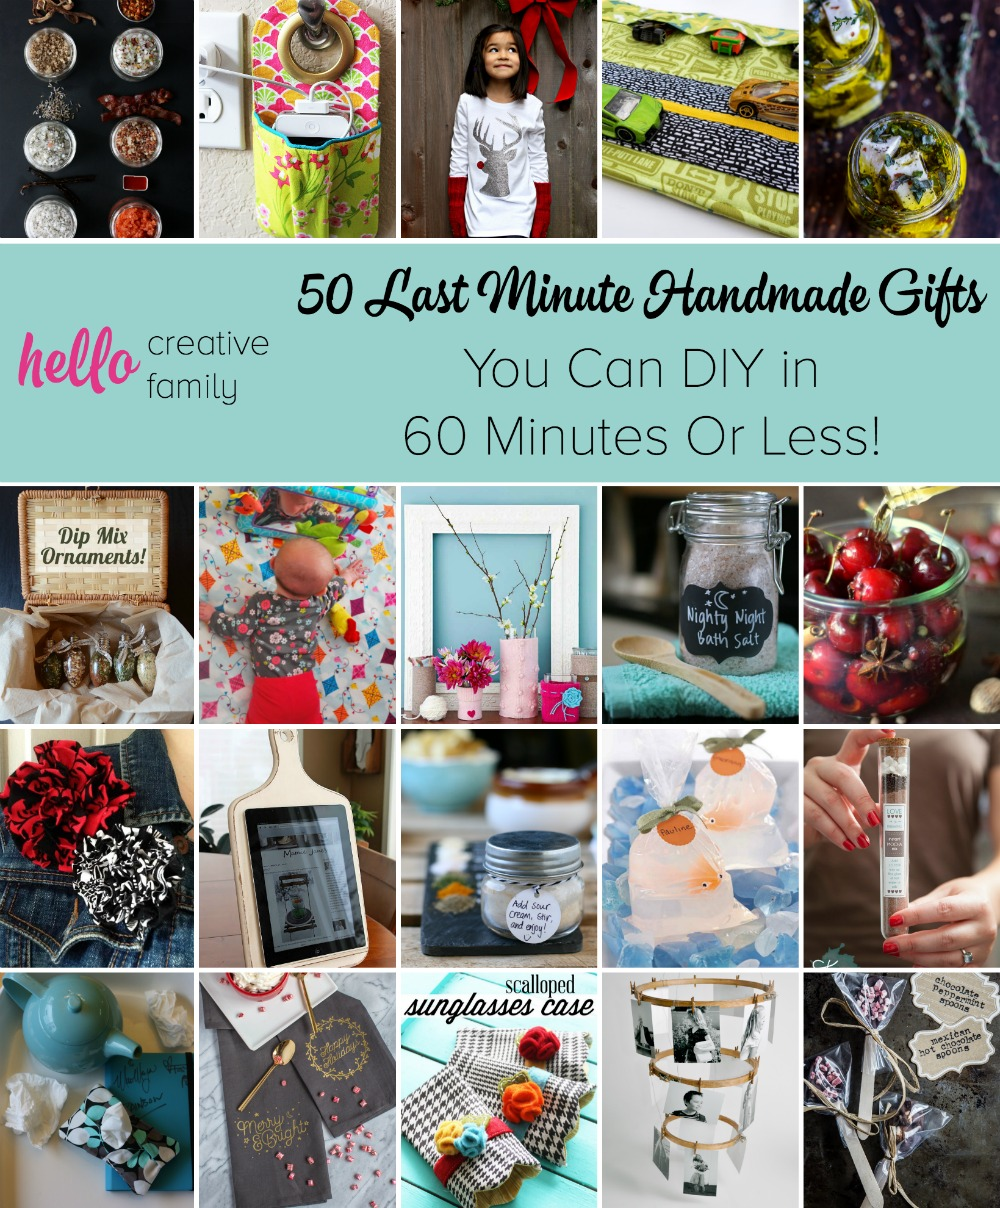 50 last minute handmade gifts you can diy in 60 minutes or less stuck for a last minute gift here are 50 last minute handmade gifts you can solutioingenieria Image collections